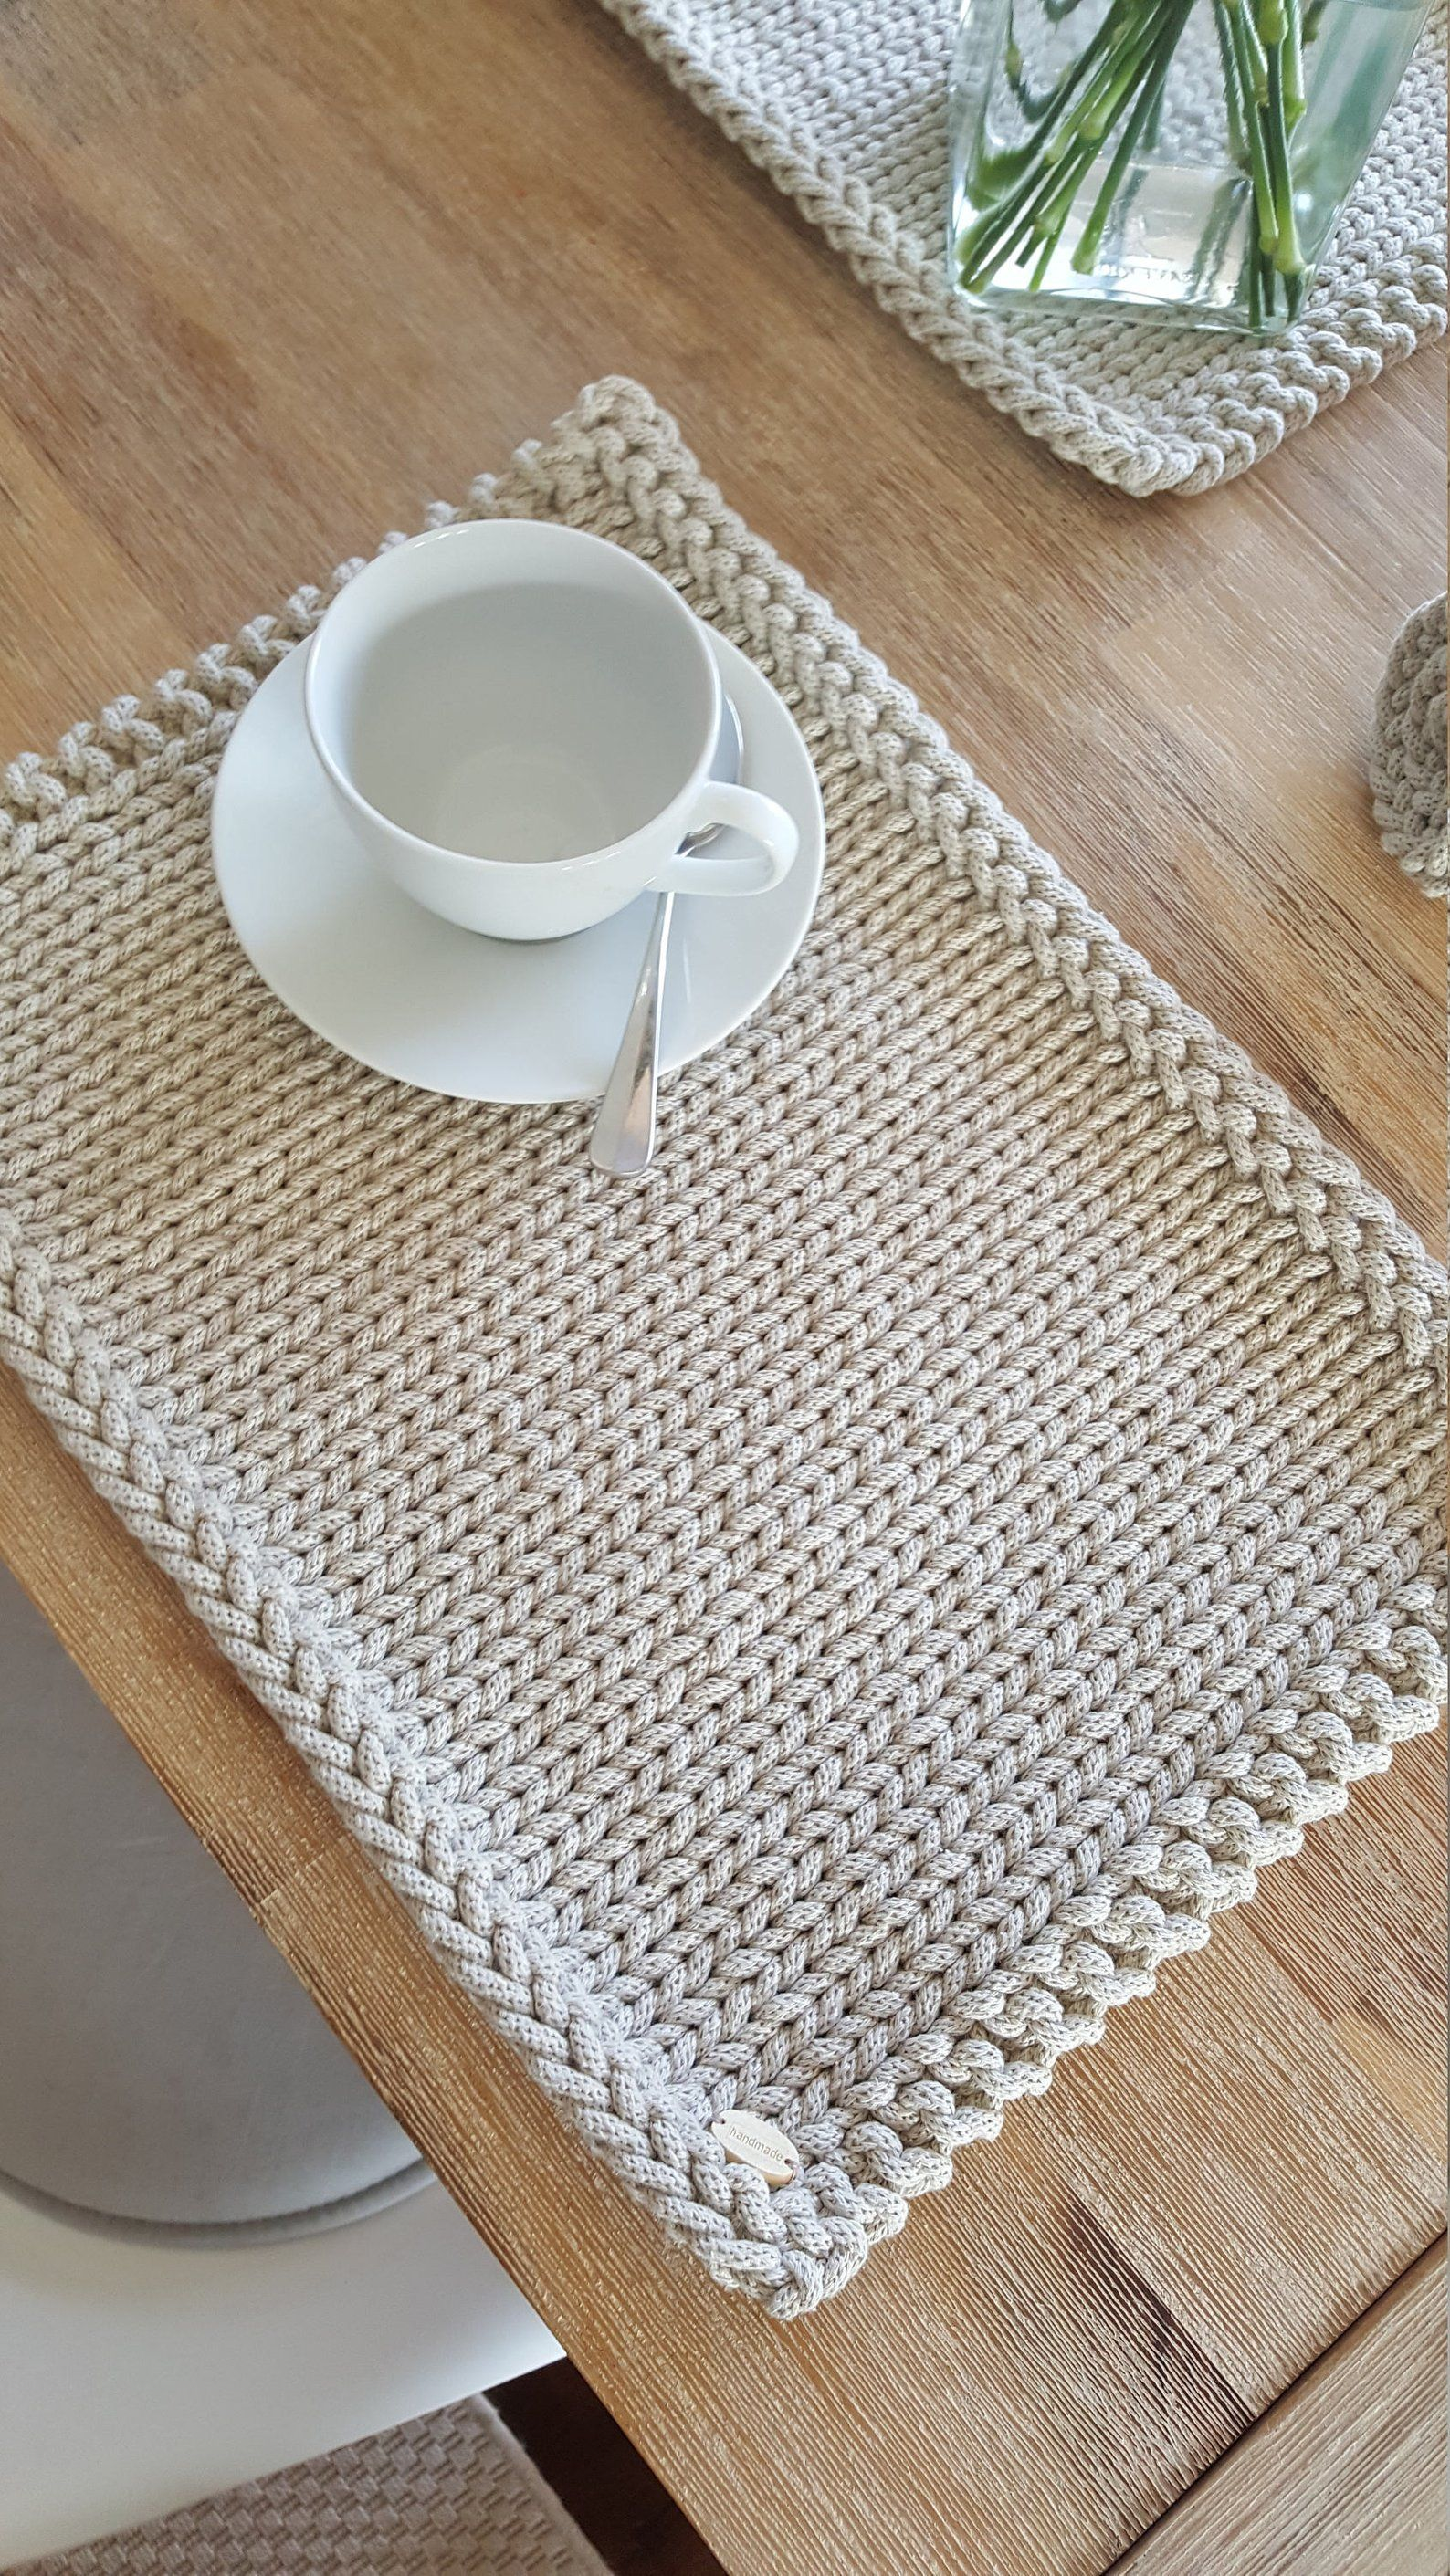 Tischset Baumwolle Placemats, Set Of 4 Knitted Cotton Placemats, Modern Table Mats, Table Decoration, Handmade Placemats, Home Decor | Tischset, Topflappen Stricken, Tischset Nähen